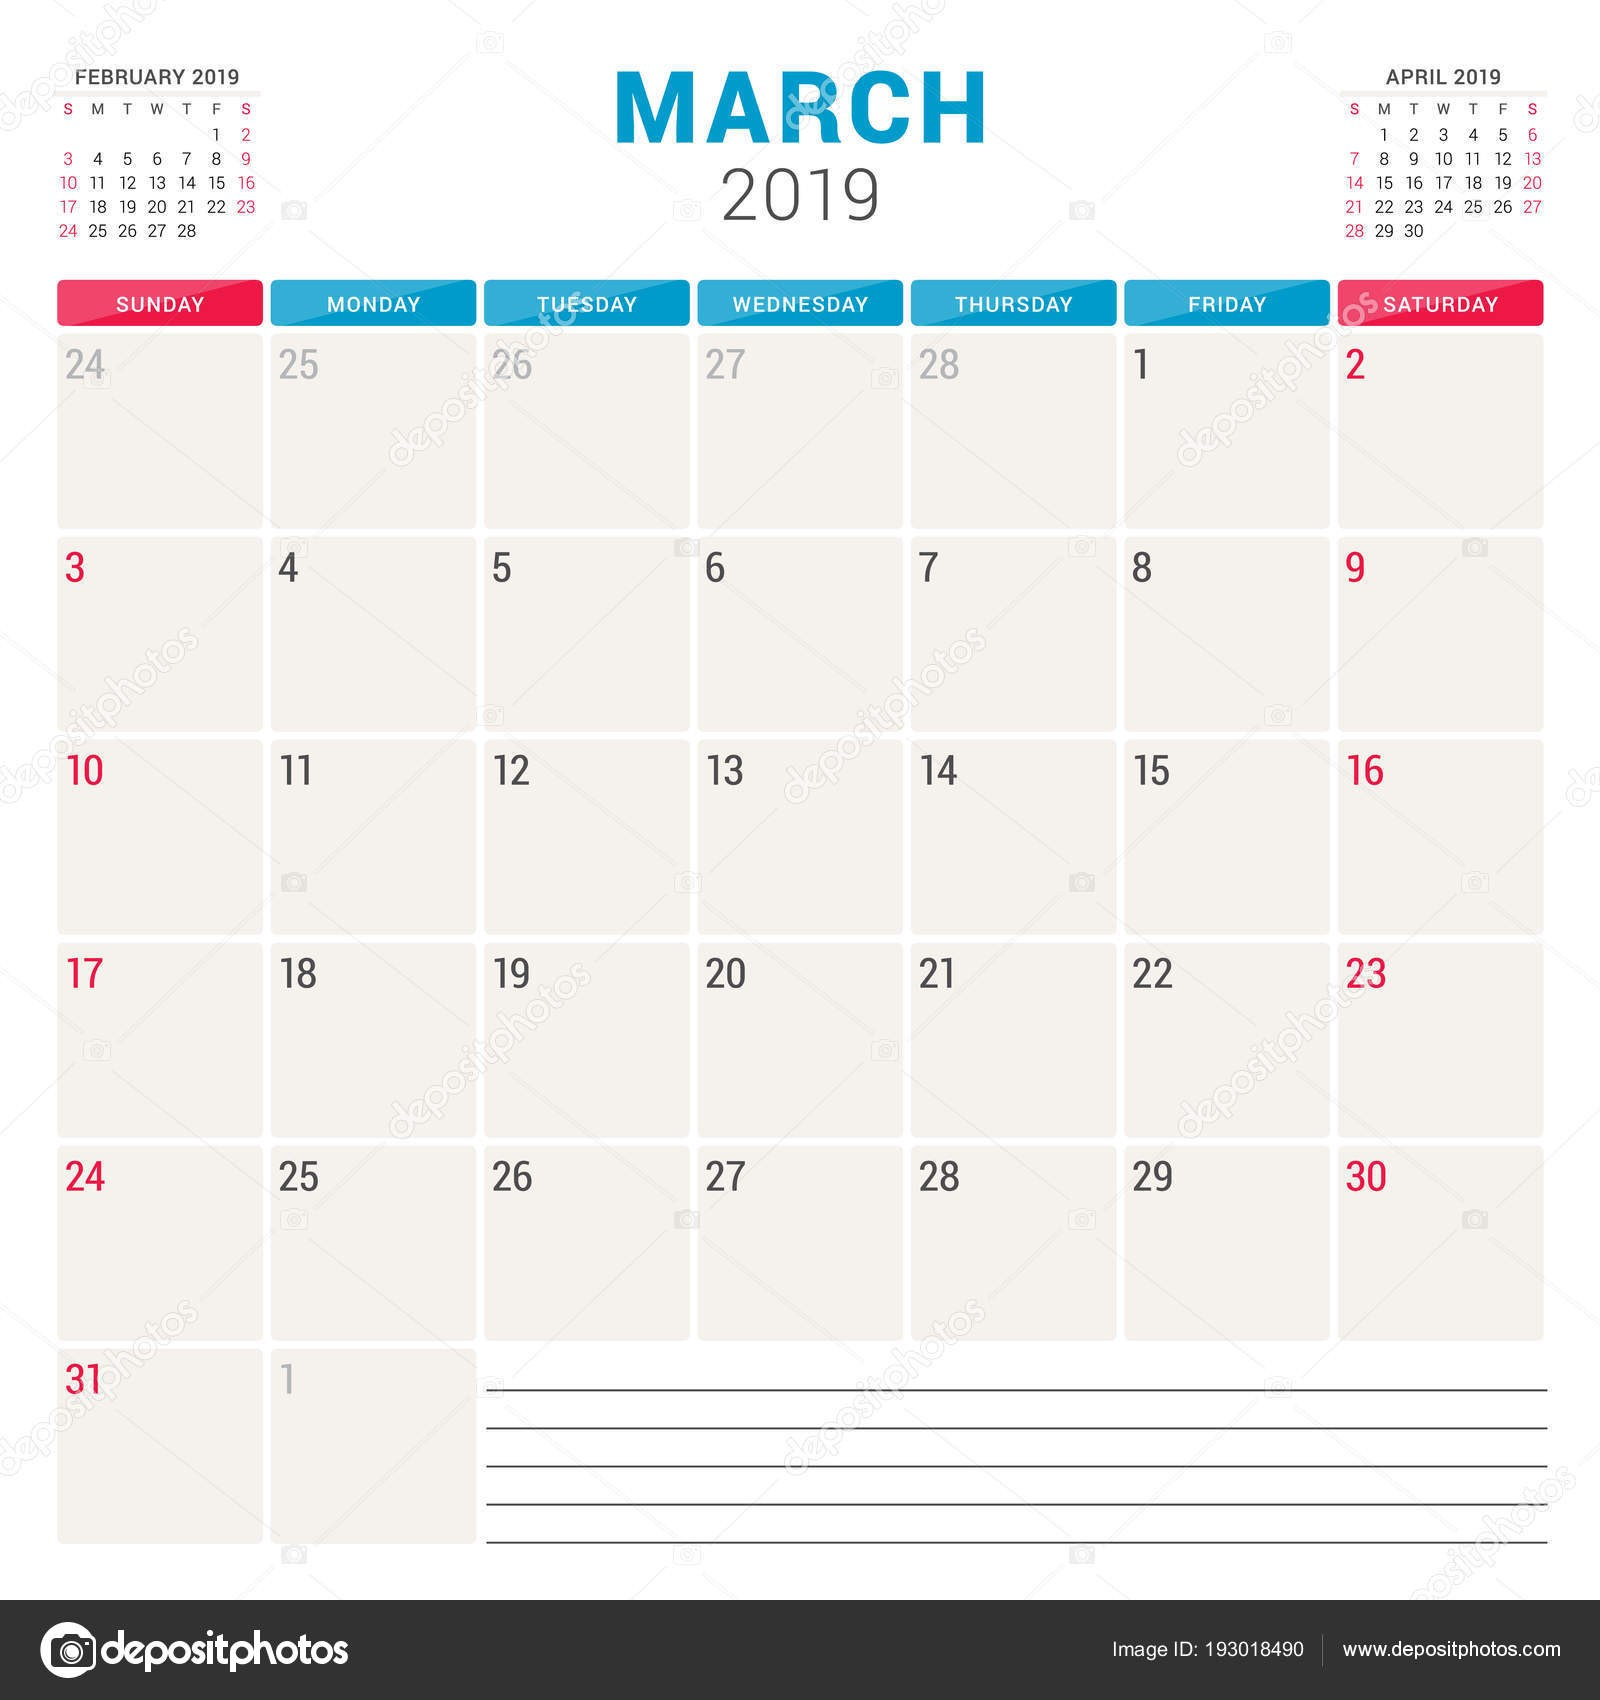 March Calendar 2019 Más Caliente Calendar Planner for March 2019 Week Starts On Sunday Printable Of March Calendar 2019 Más Populares March 2019 Calendar Pdf Word Excel